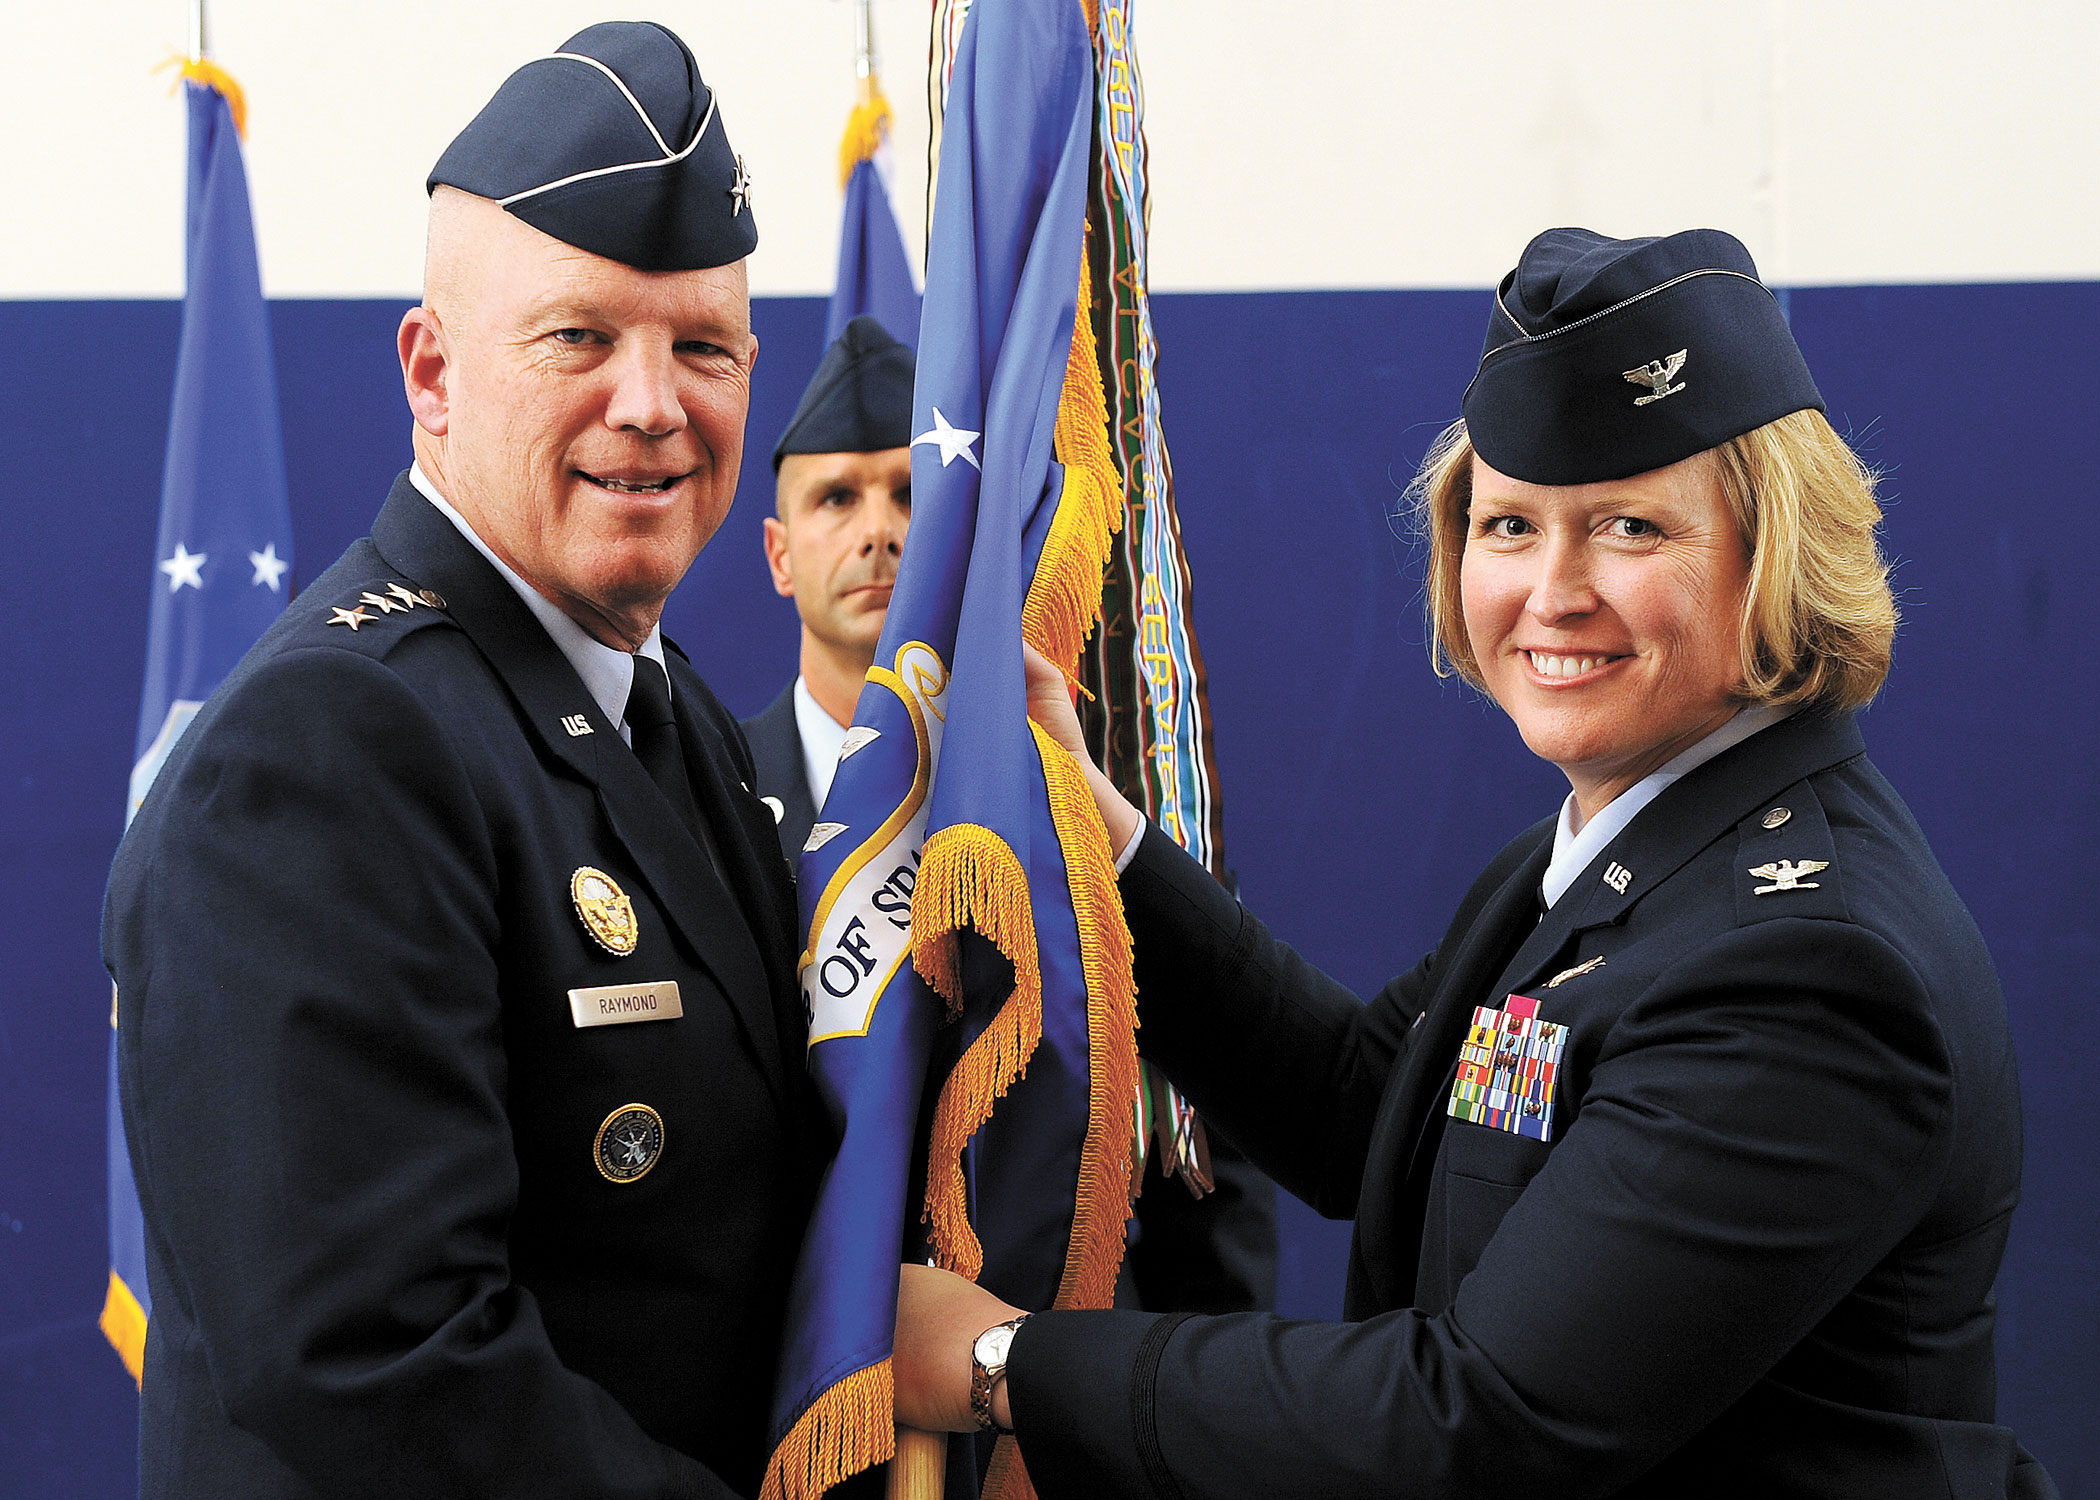 "U.S. Air Force photo/Dennis Rogers U.S. Air Force Lt. Gen. John W. ""Jay"" Raymond, commander, 14th Air Force (Air Forces Strategic) and Joint Functional Component Command for Space, passes the guidon to Col. DeAnna M. Burt, as she assumes command of the 50th Space Wing, during the change-of-command ceremony Friday at Schriever Air Force Base, Colo. As wing commander, Burt will be responsible for more than 4,200 military, Department of Defense civilians and contractor personnel serving at 14 operating locations worldwide and operating 69 surveillance, navigation and timing, space situational awareness and satellites valued at more than $66 billion."